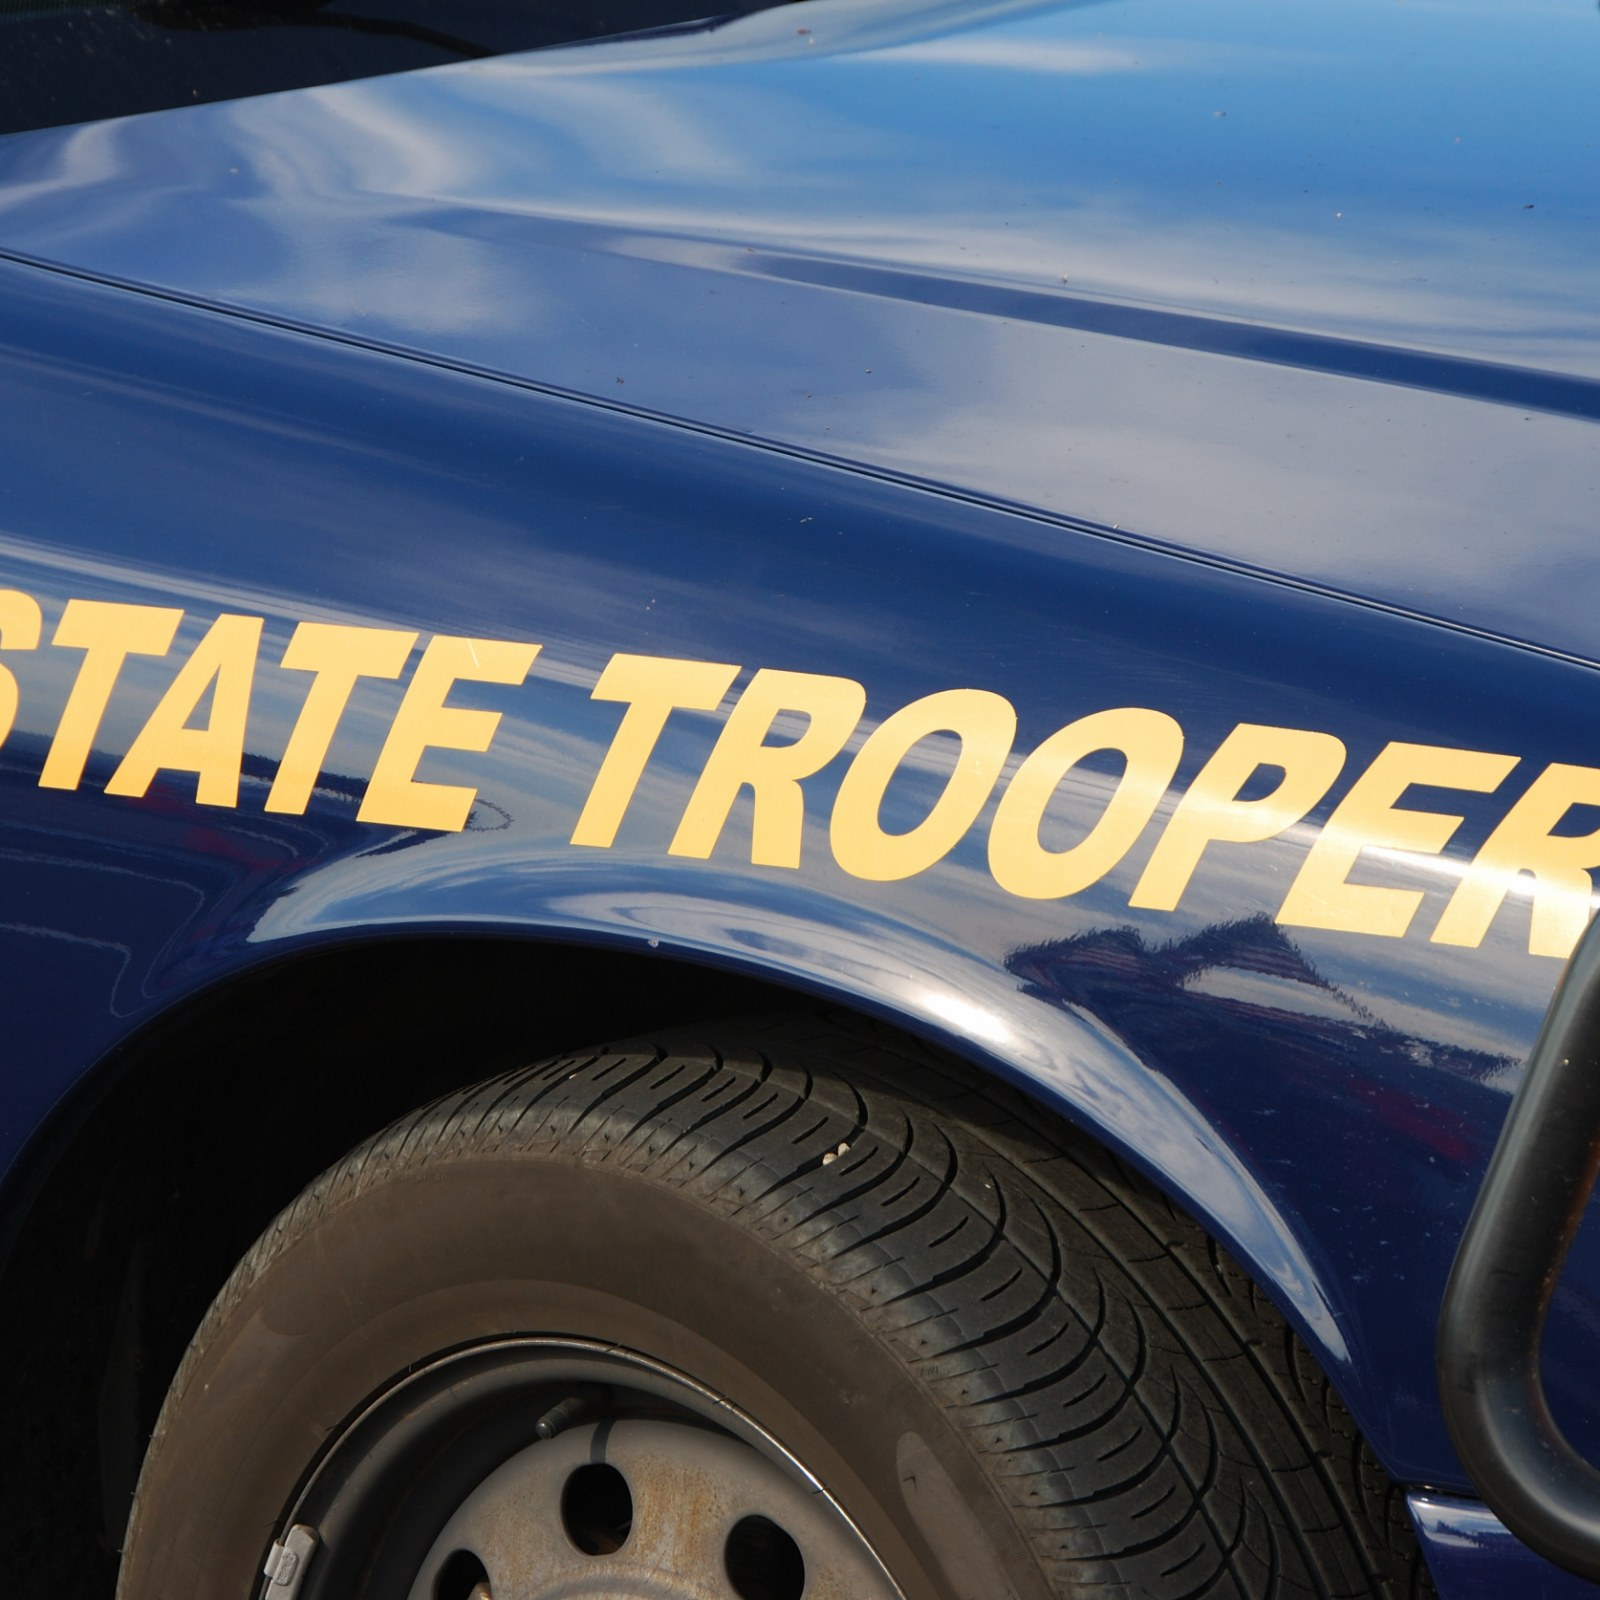 Maryland State Police Investigating an Incident Where Trooper Ripped